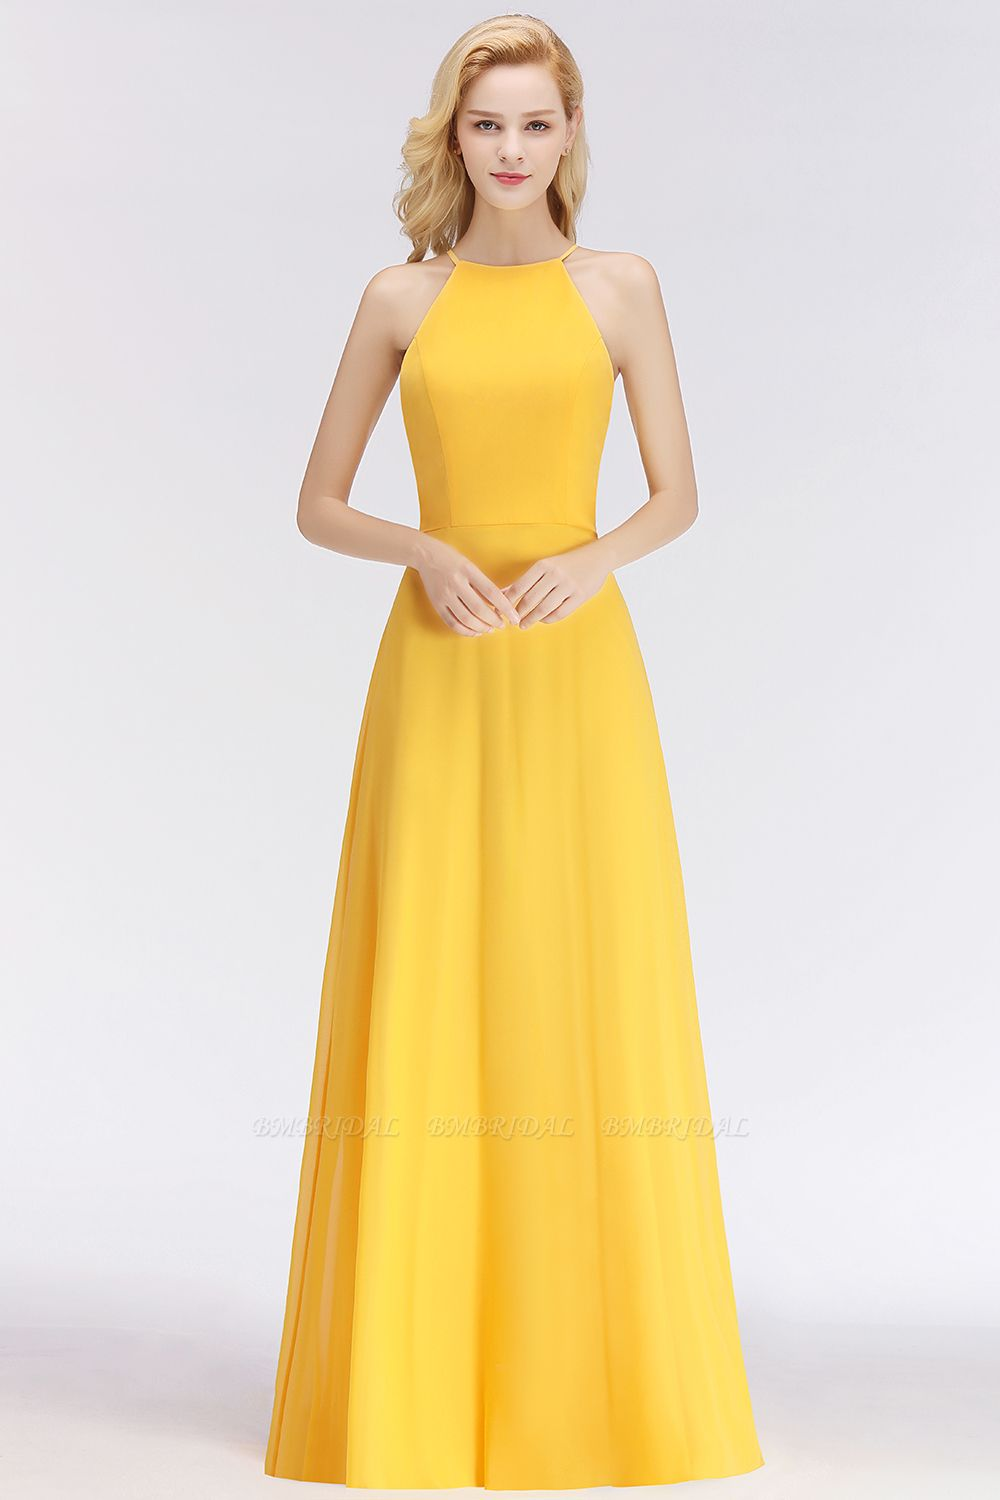 Modest High-Neck Yellow Chiffon Affordable Bridesmaid Dresses Online